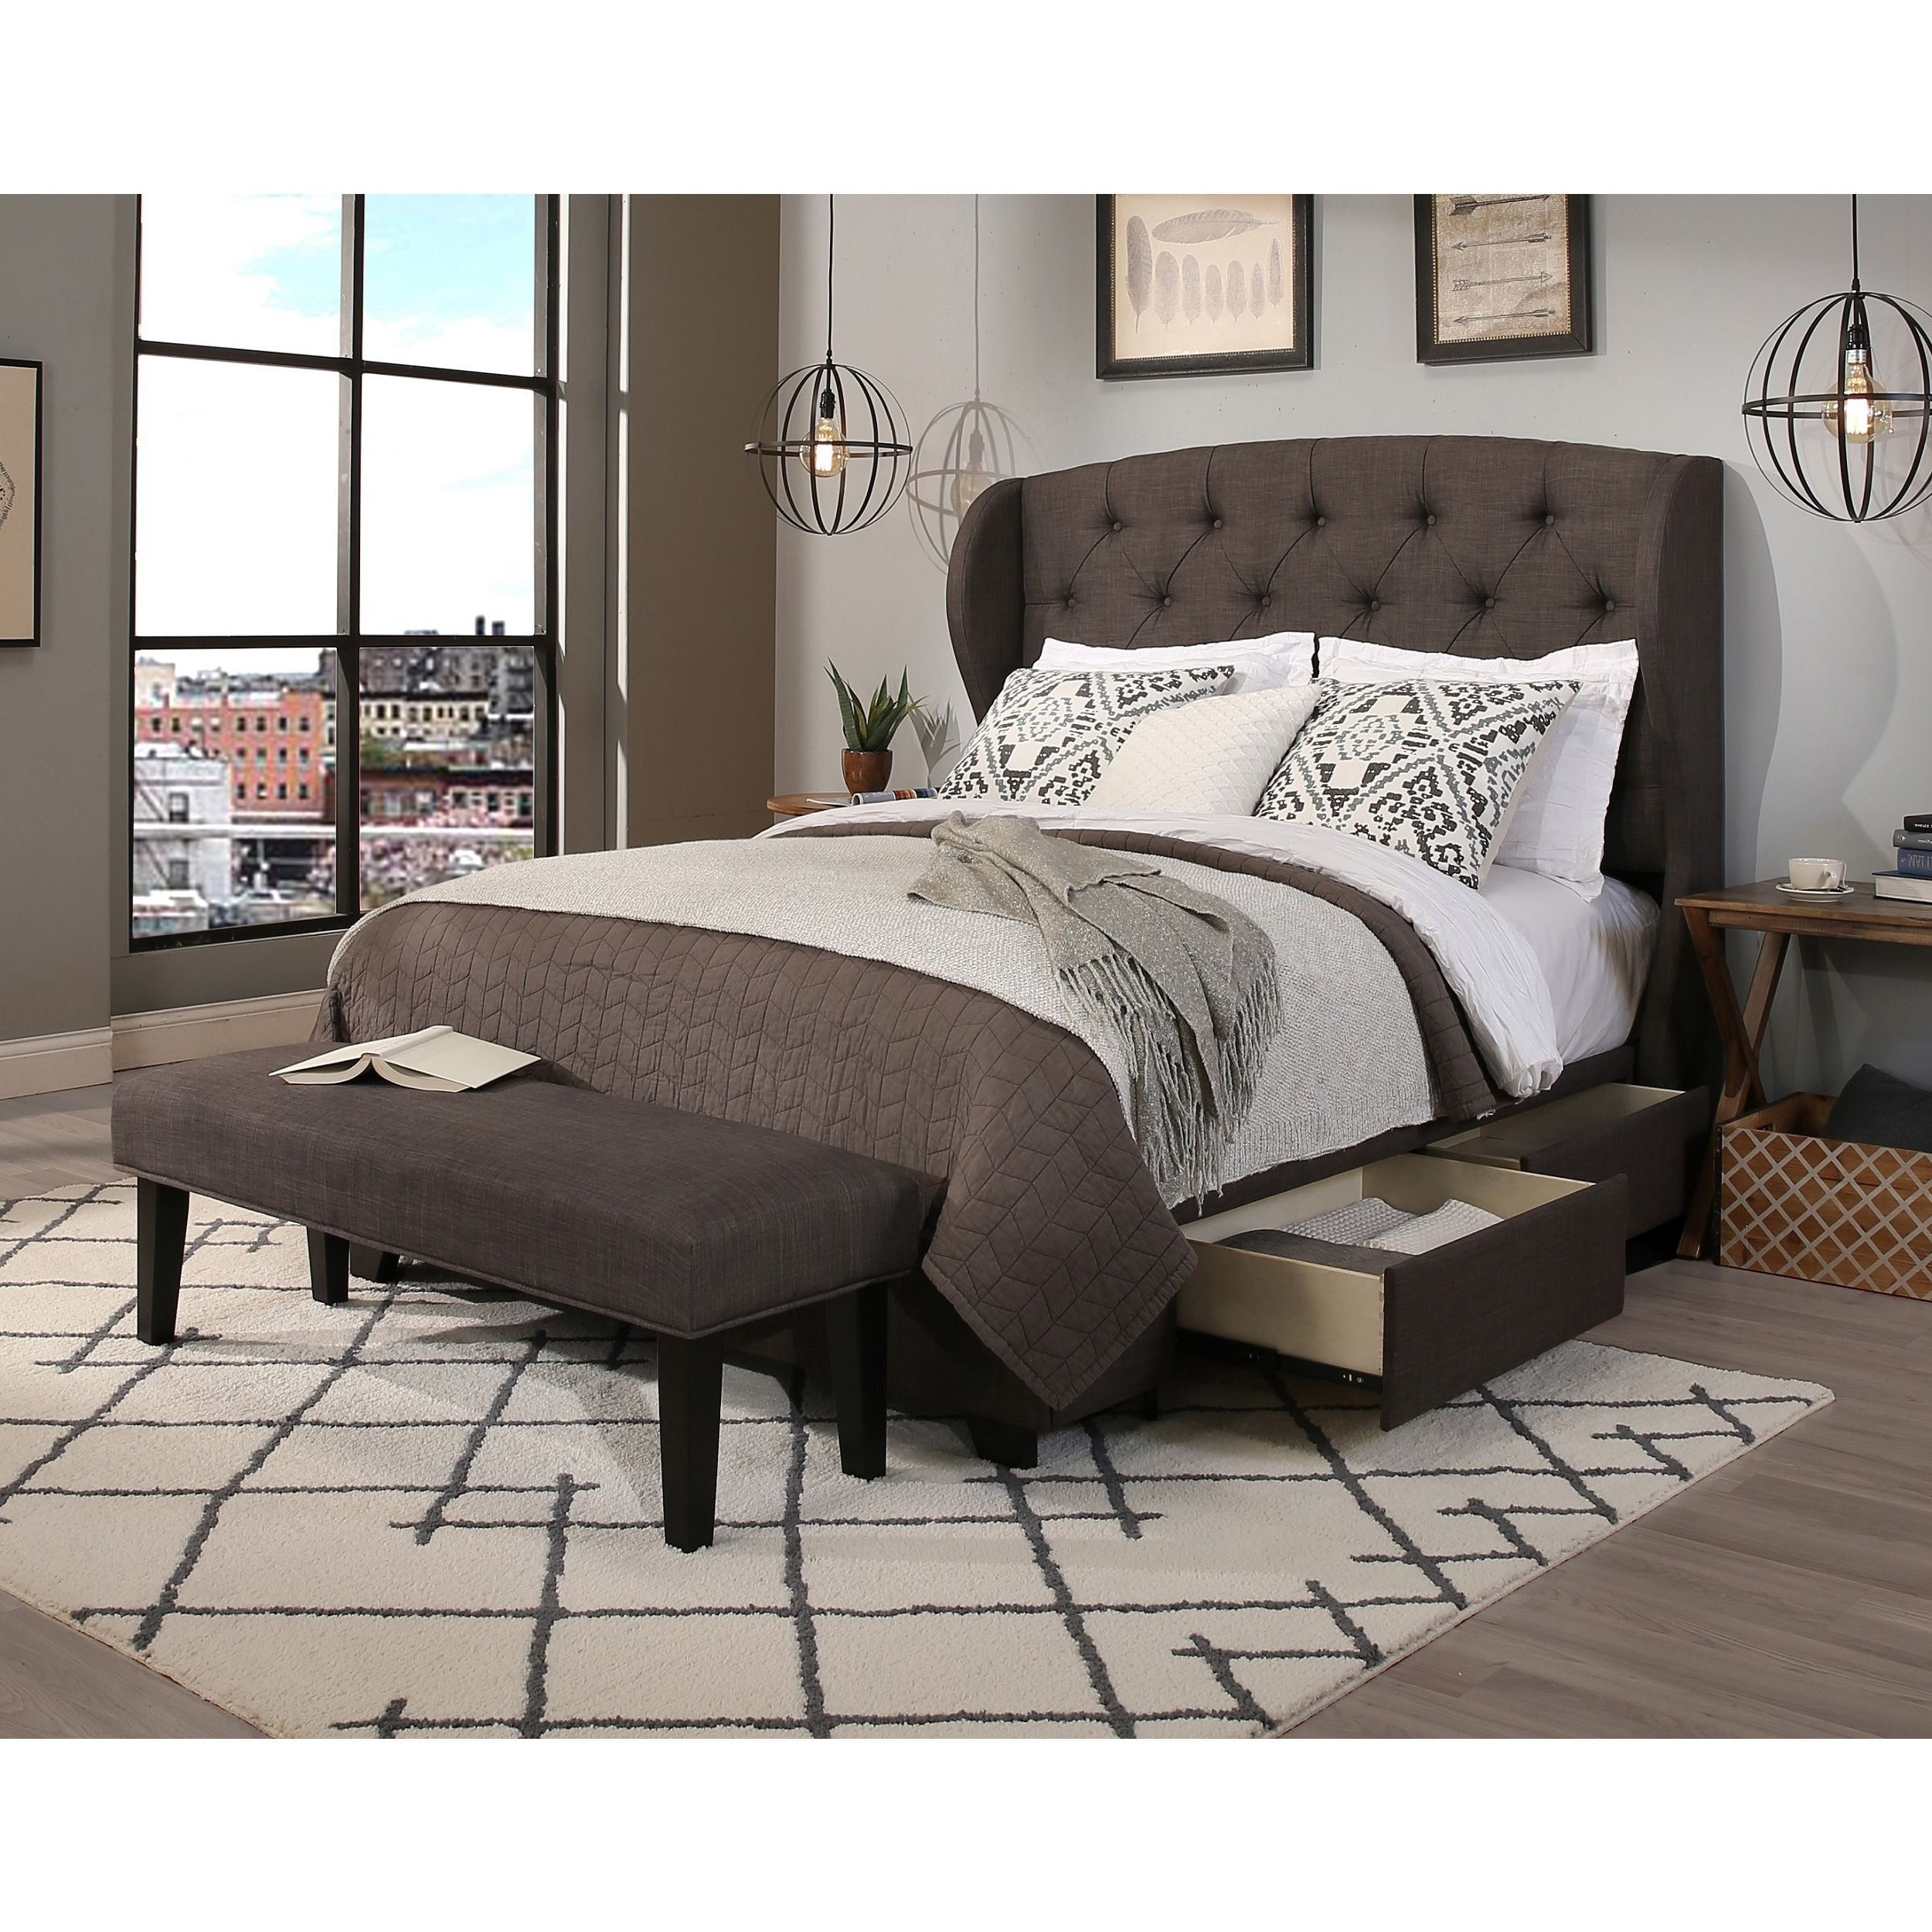 Republic Archer Grey Headboard Storage Bed And Bench Set E King Cal Only